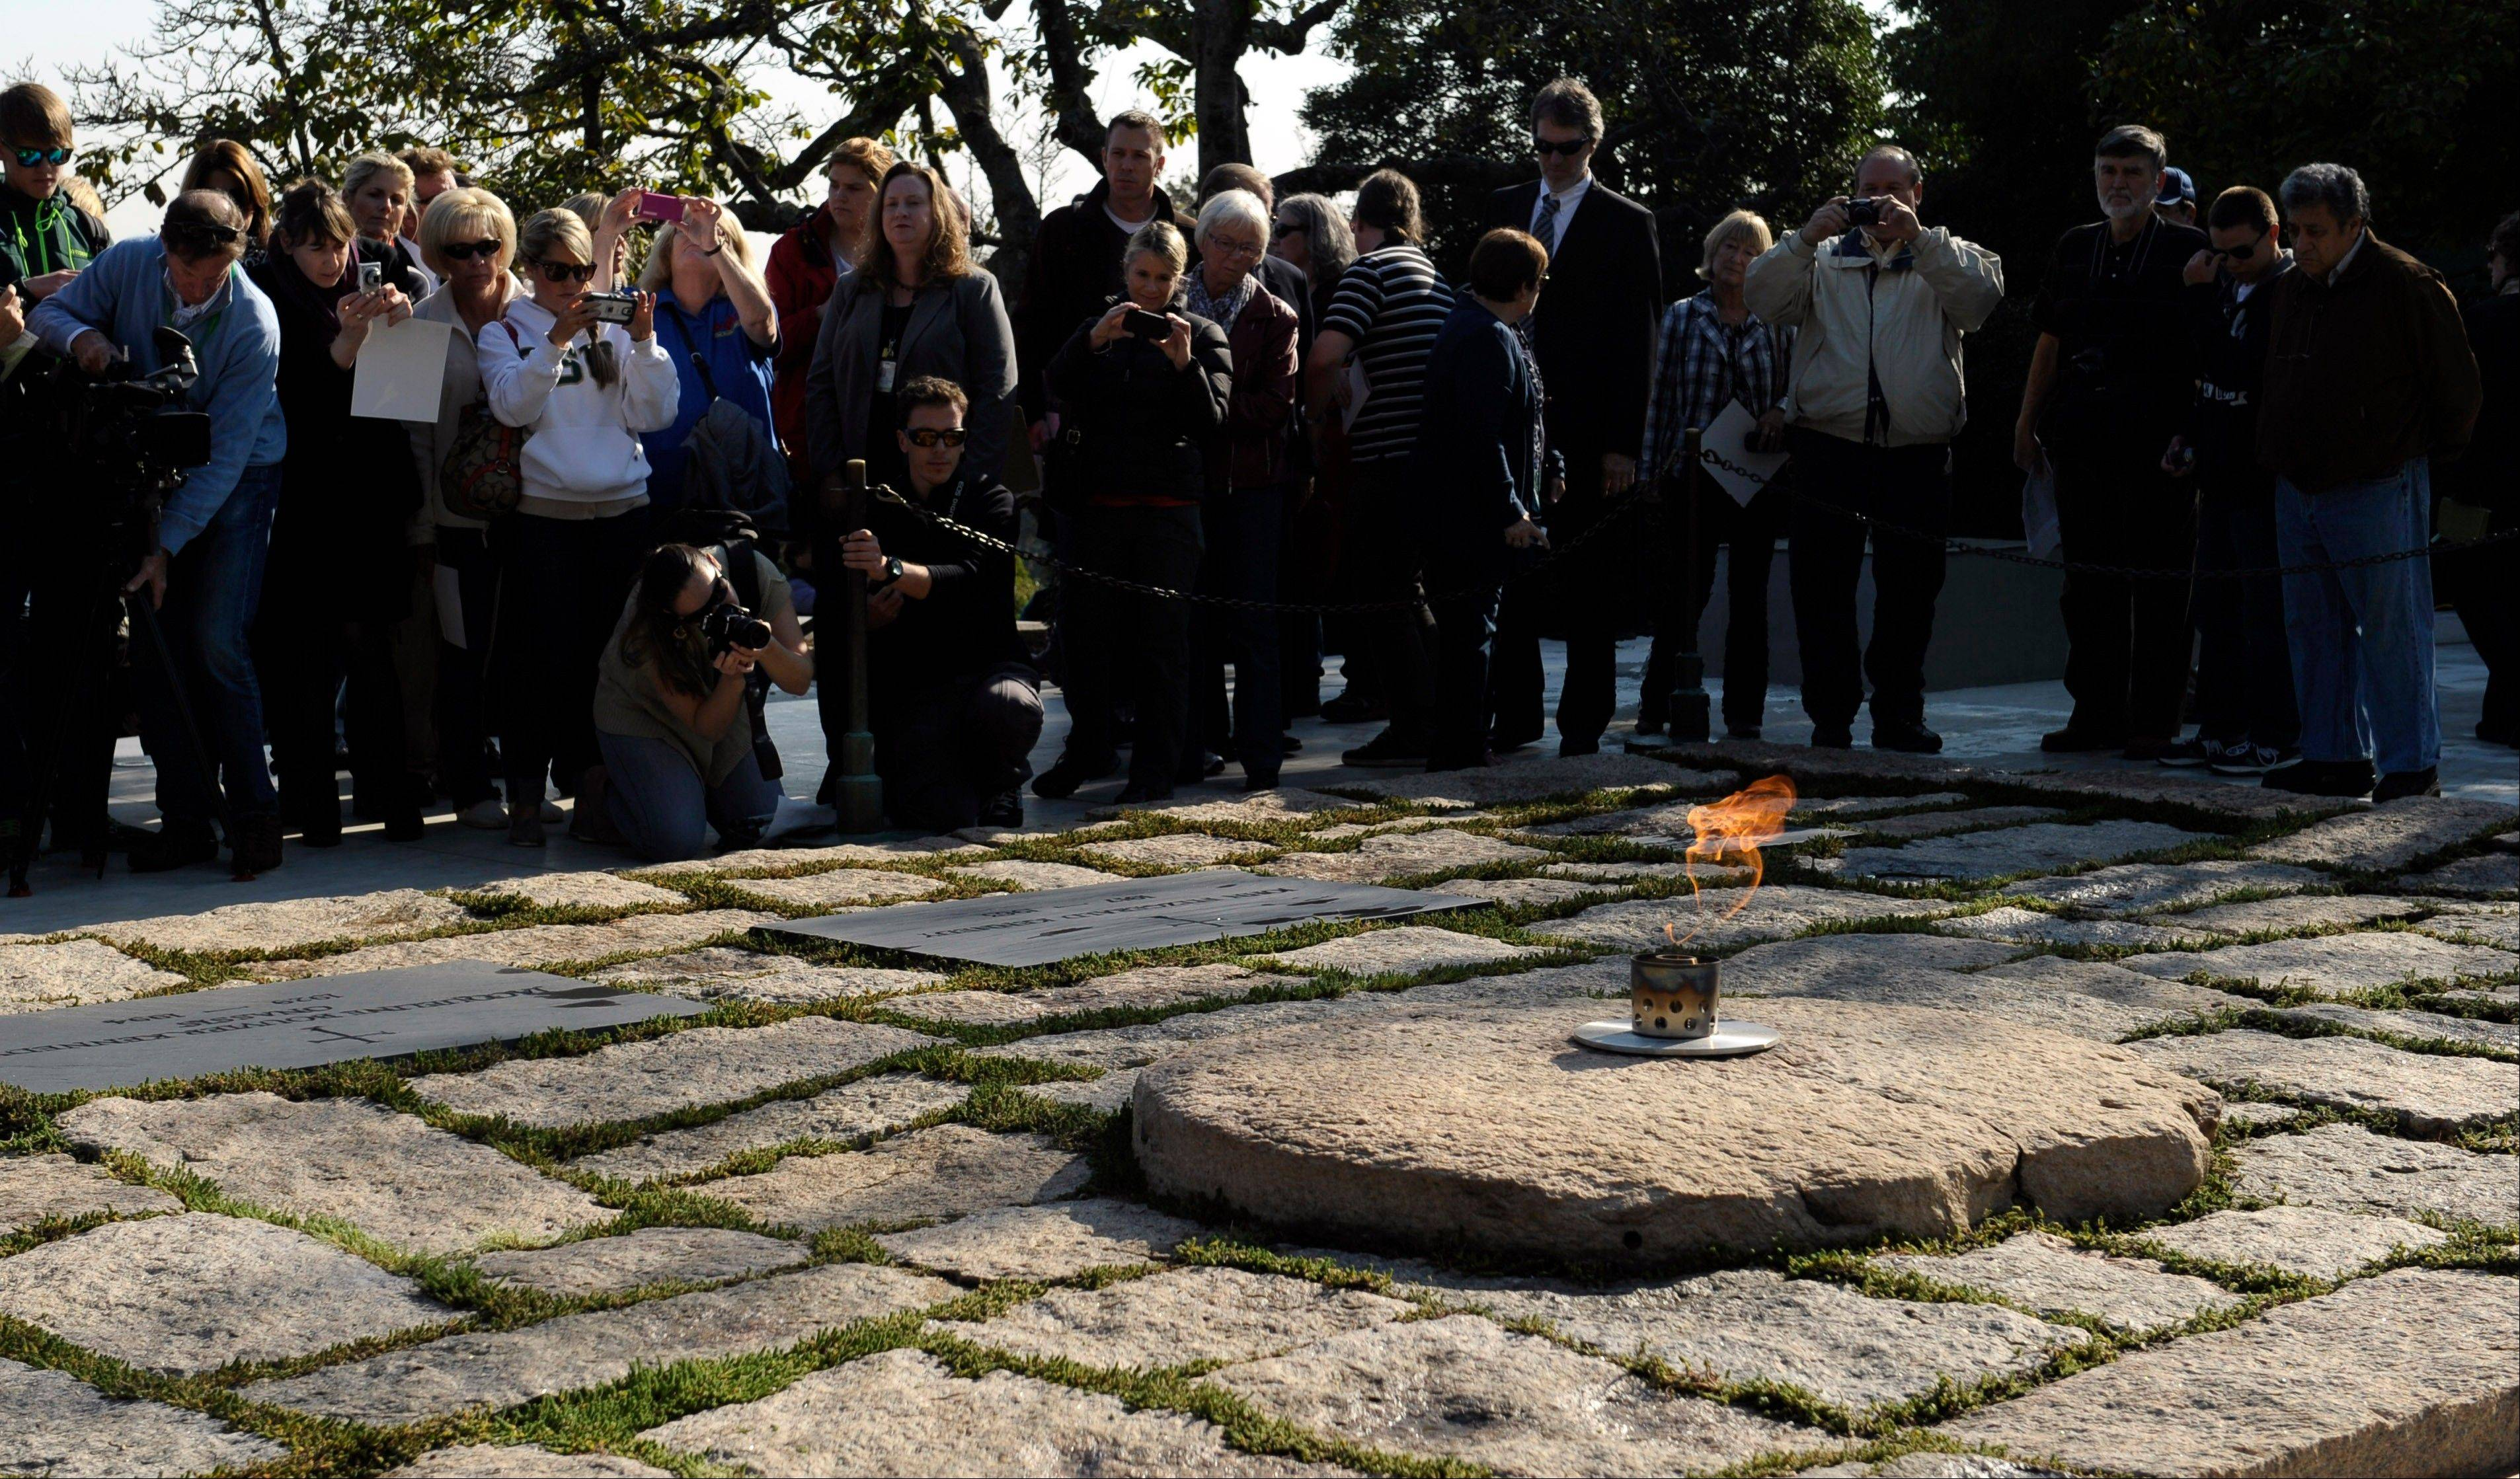 People visit the eternal flame at the gravesite of former President John F. Kennedy as it burns at Arlington National Cemetery in Arlington, Va.